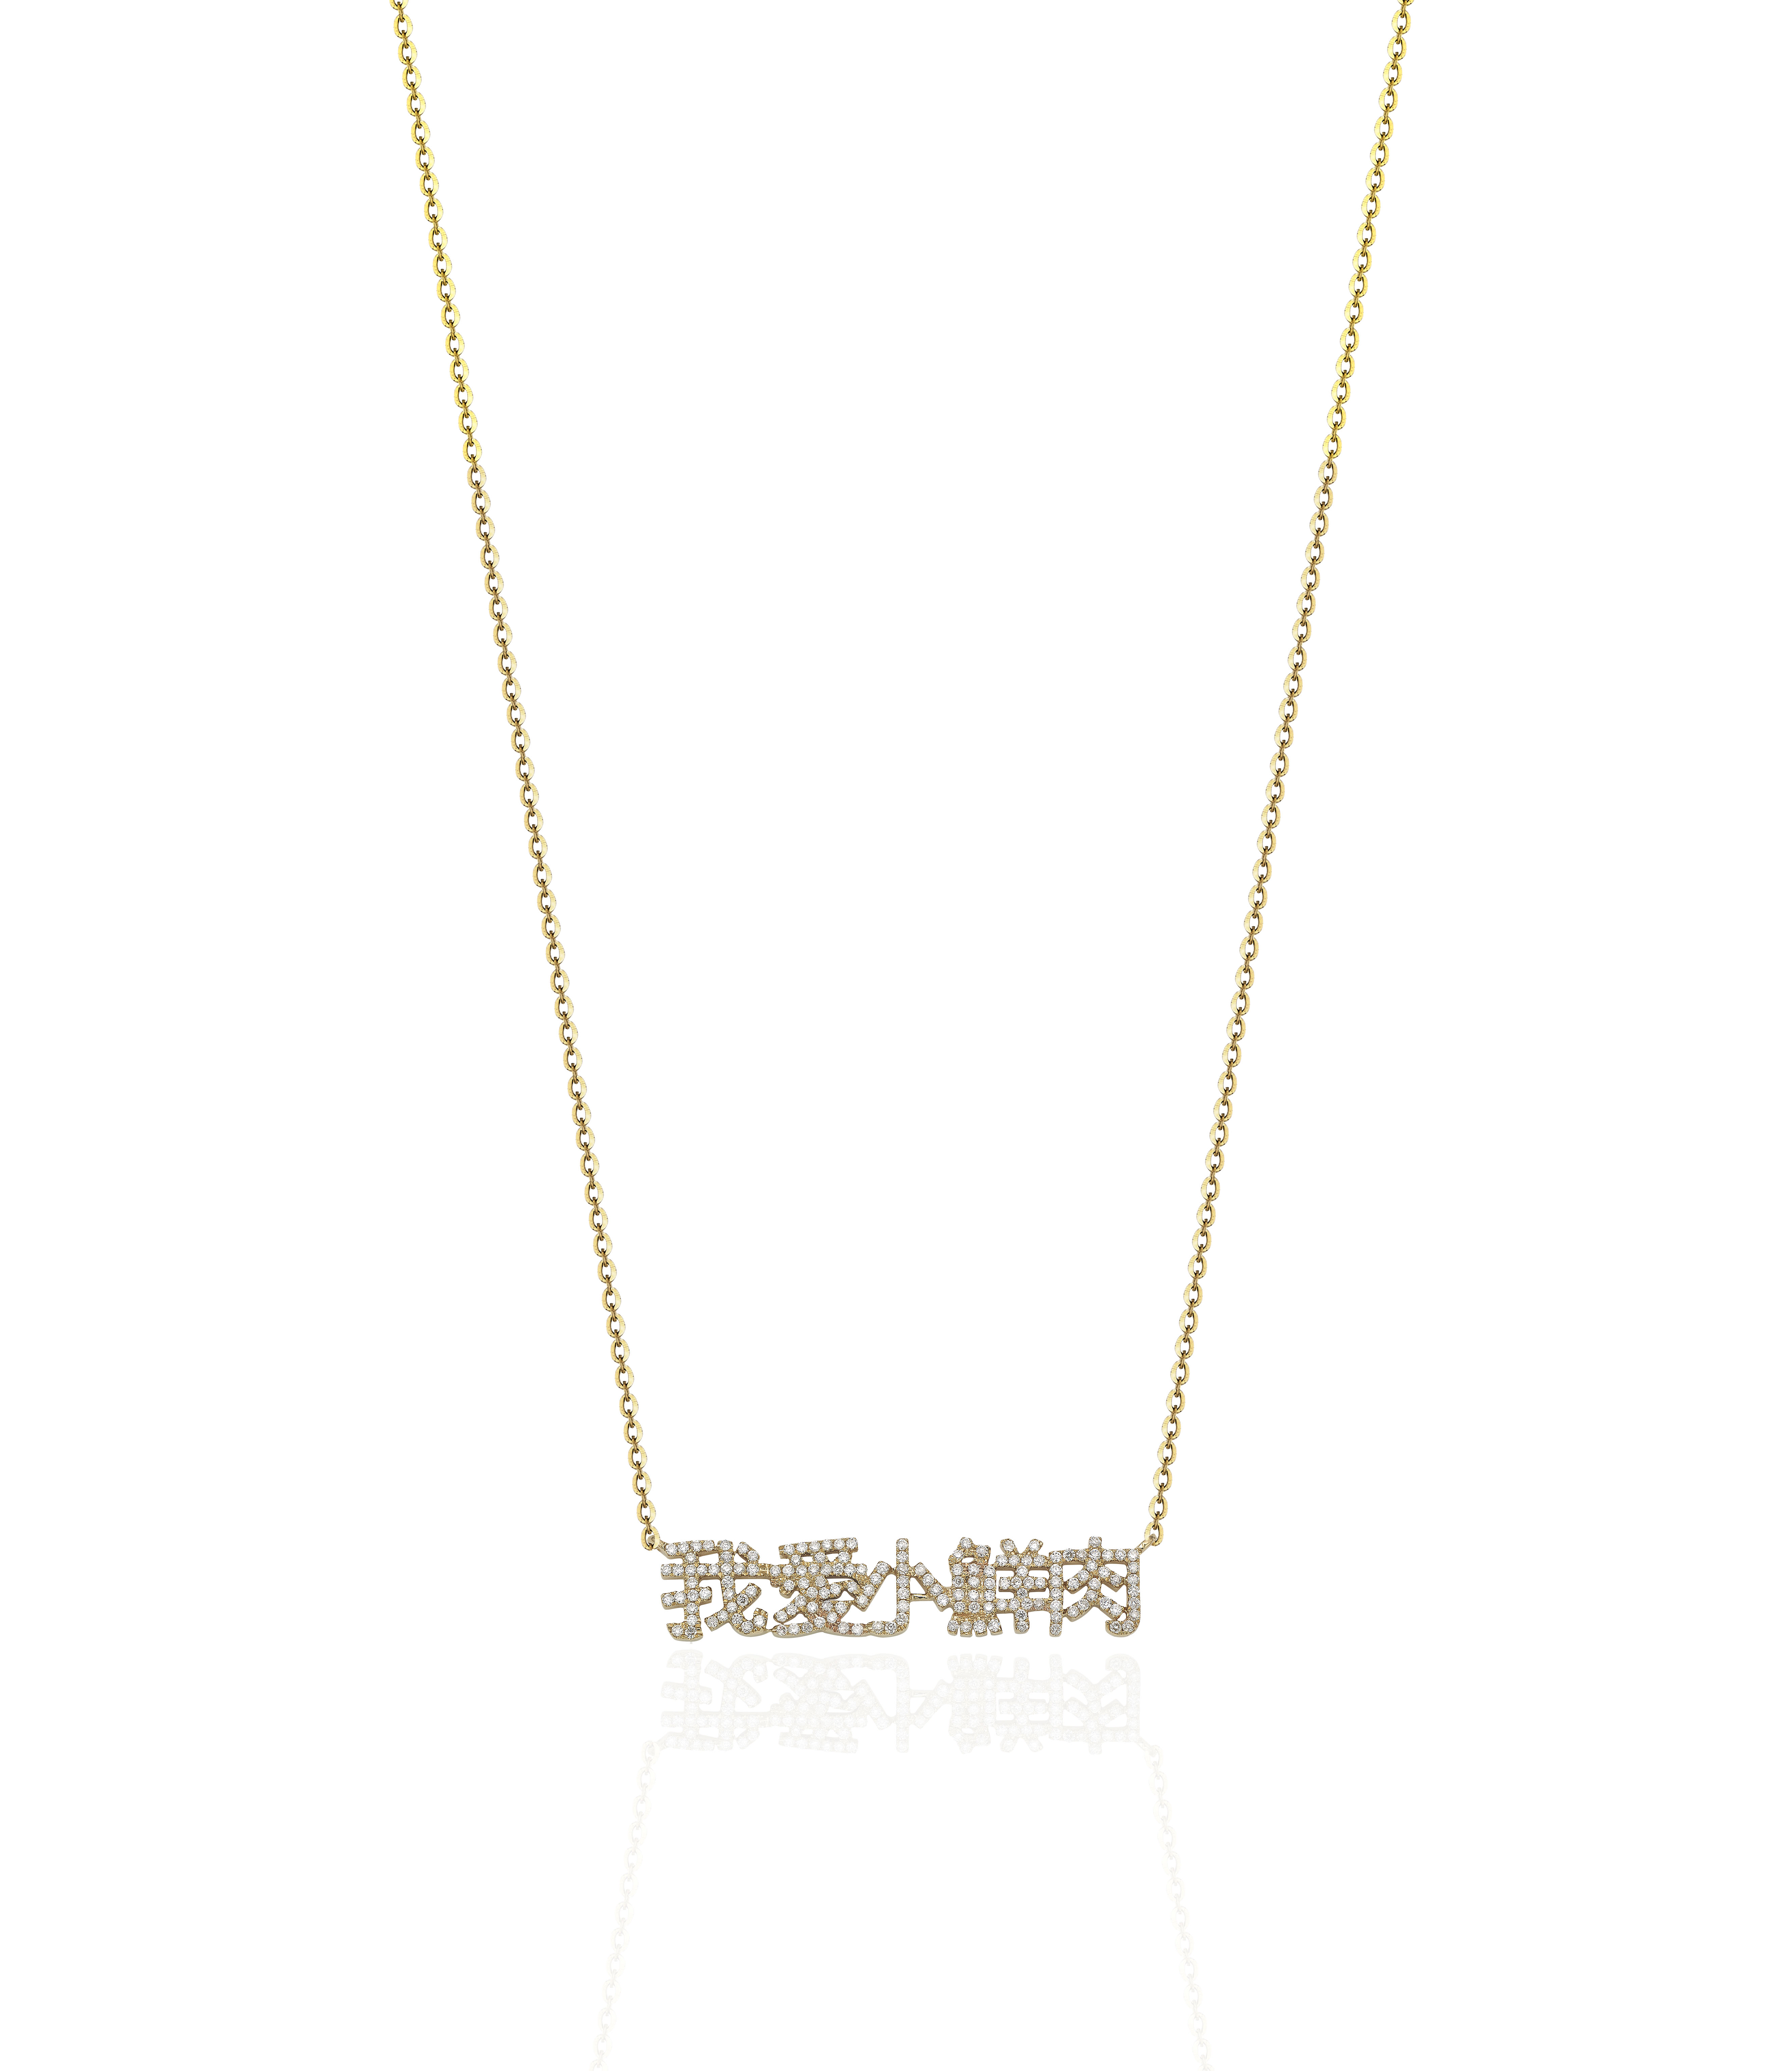 """25 Unexpected Ways To Say """"I Love You"""" this Valentine's Day, YunYunSun I LOVE YOUNG HUNK DIAMOND NECKLACE"""